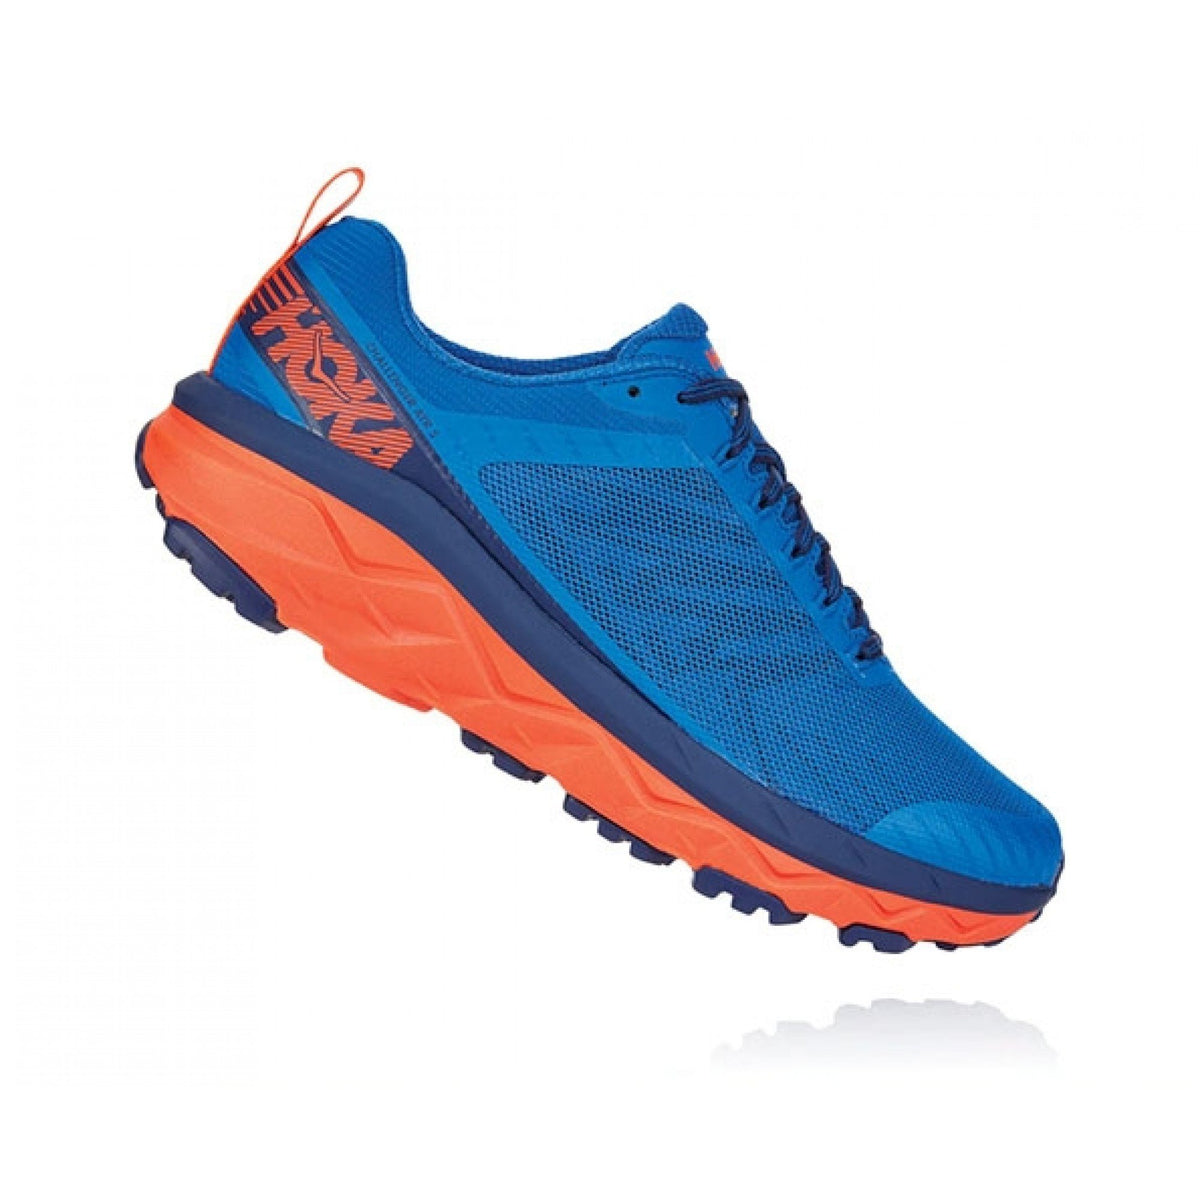 Hoka One One Challenger ATR 5 Mens - Sole Motive